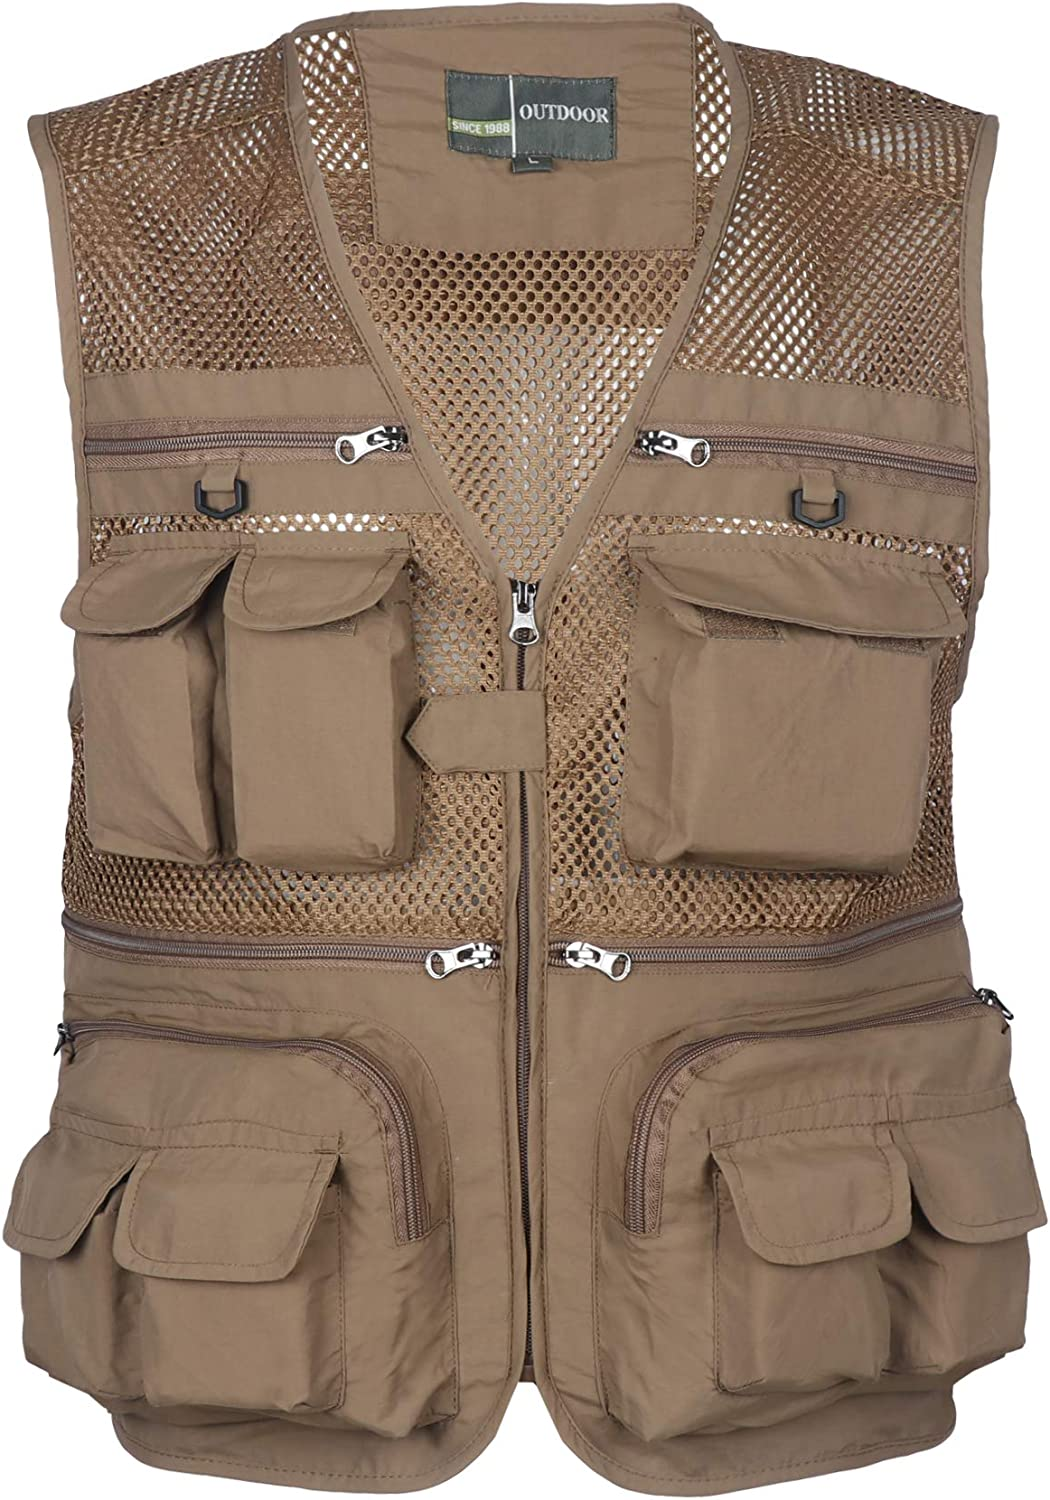 Homovater Mens Mesh Fishing Vest with Multi Pockets Travel Photography Waistcoat Jacket